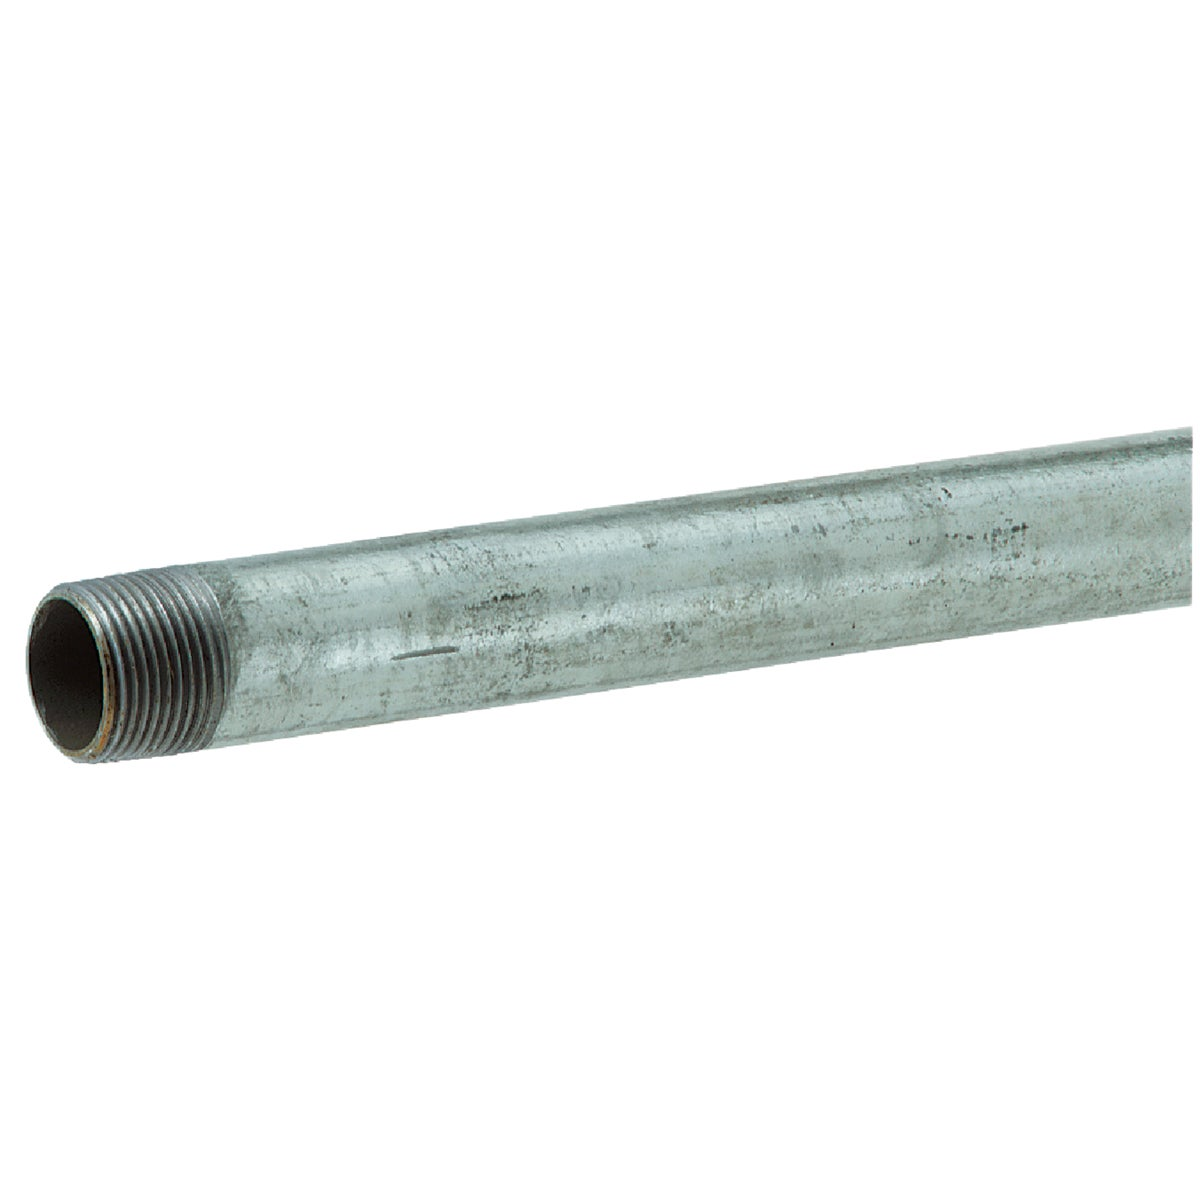 1/2X24 GALV RDI-CT PIPE - 1/2X24 by Southland Pipe Nippl